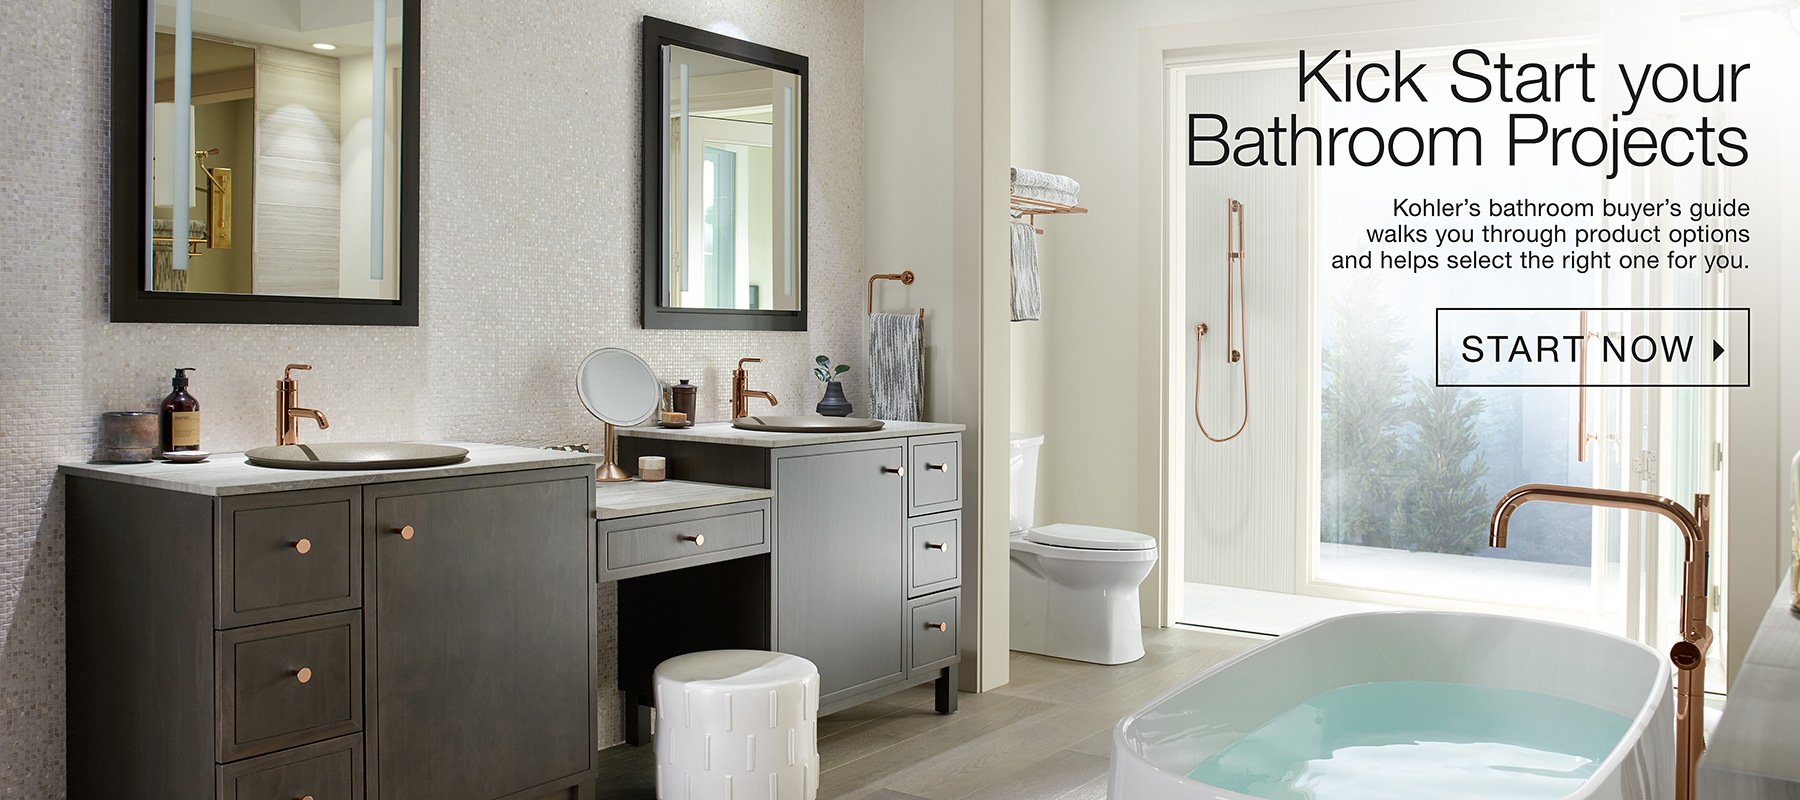 bath and kitchen blue color cabinets kohler bathroom products at the ensuite showroom